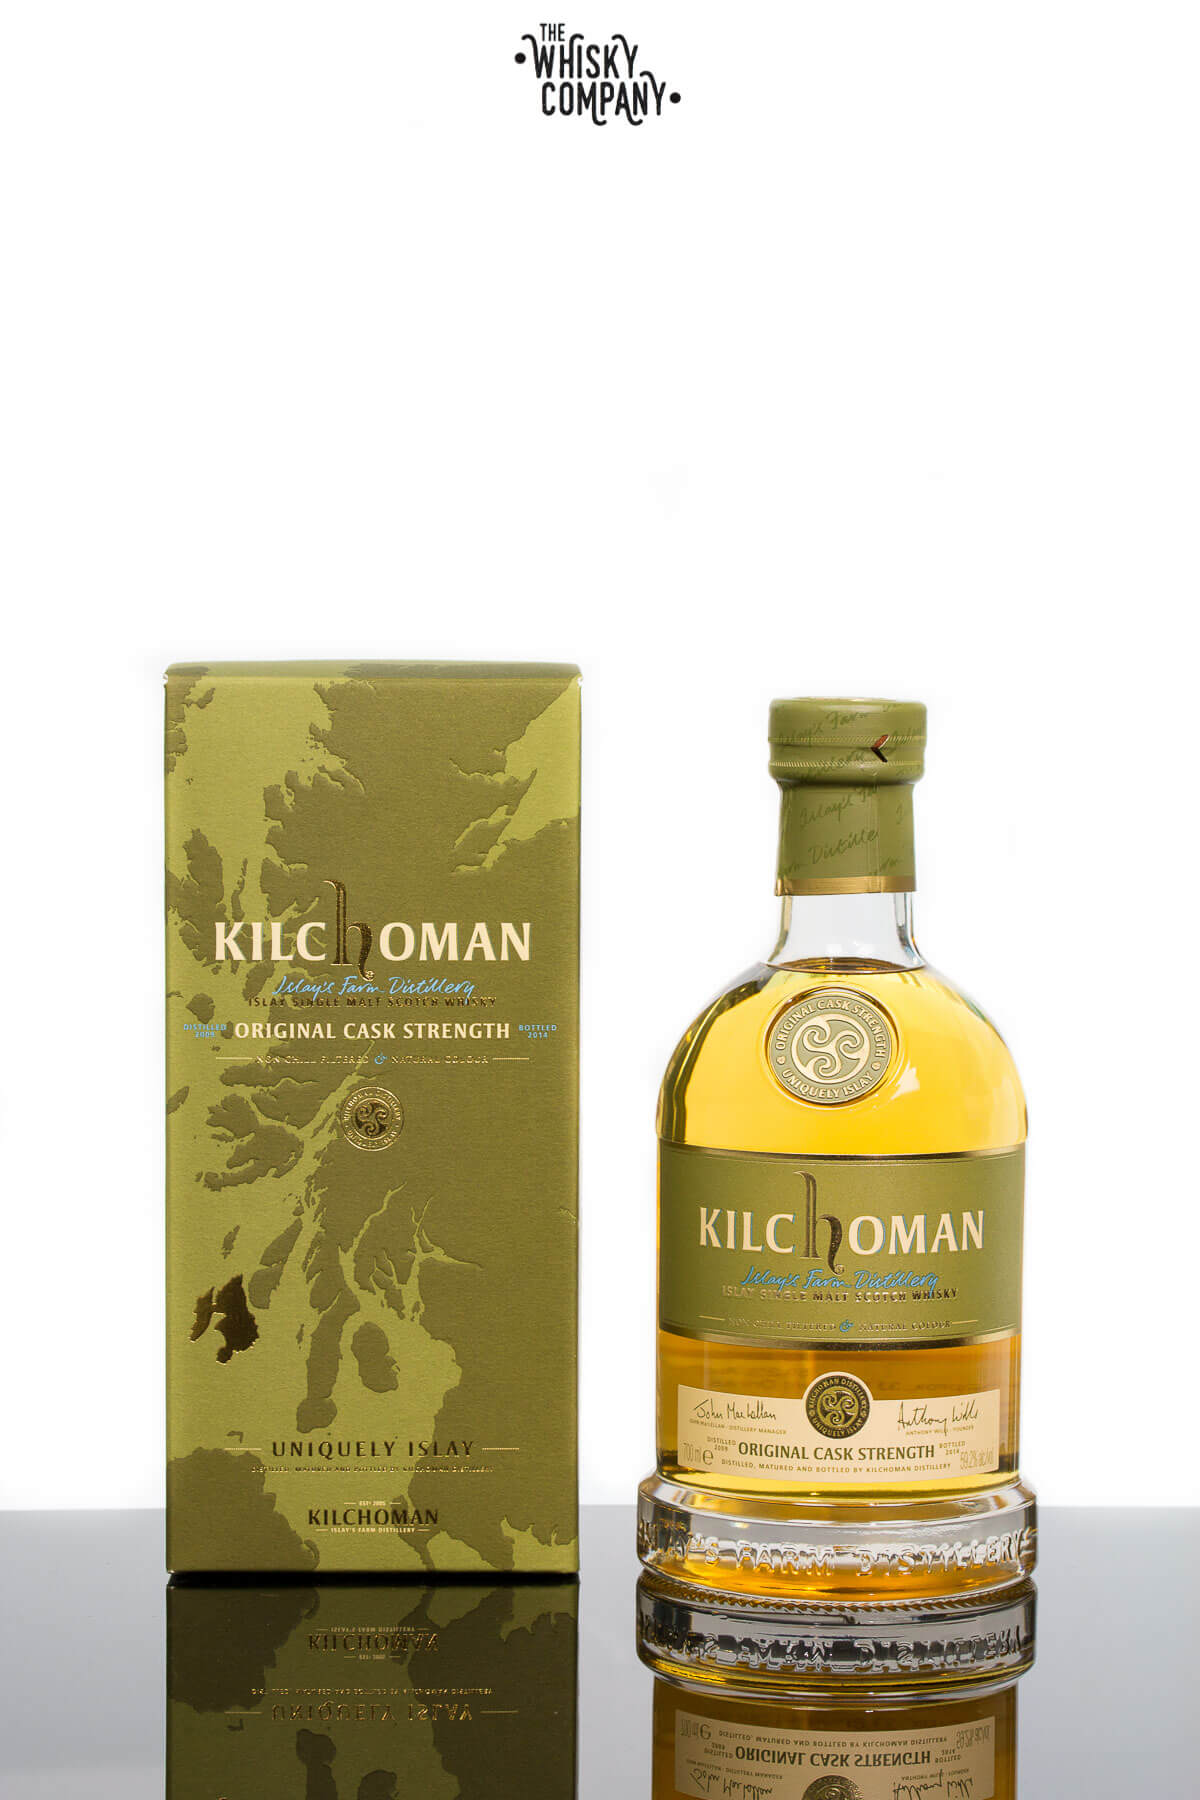 Kilchoman Original Cask Strength Islay Single Malt Scotch Whisky